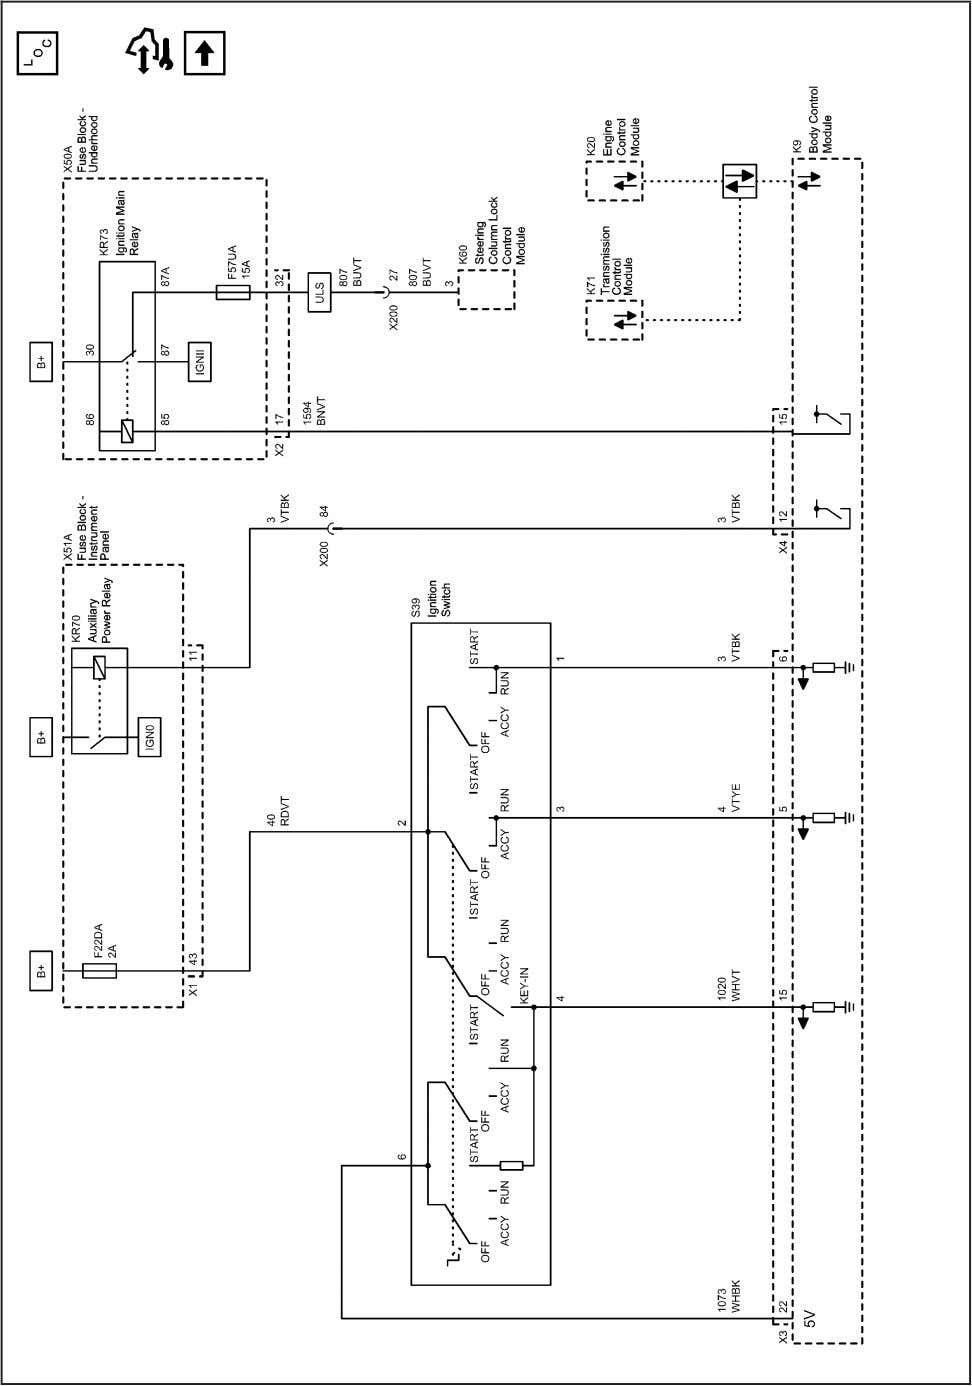 Systems and Power Management 2203154 Power Moding Schematics (Ignition Switch (without ATH)) 2010 - Cruze Service